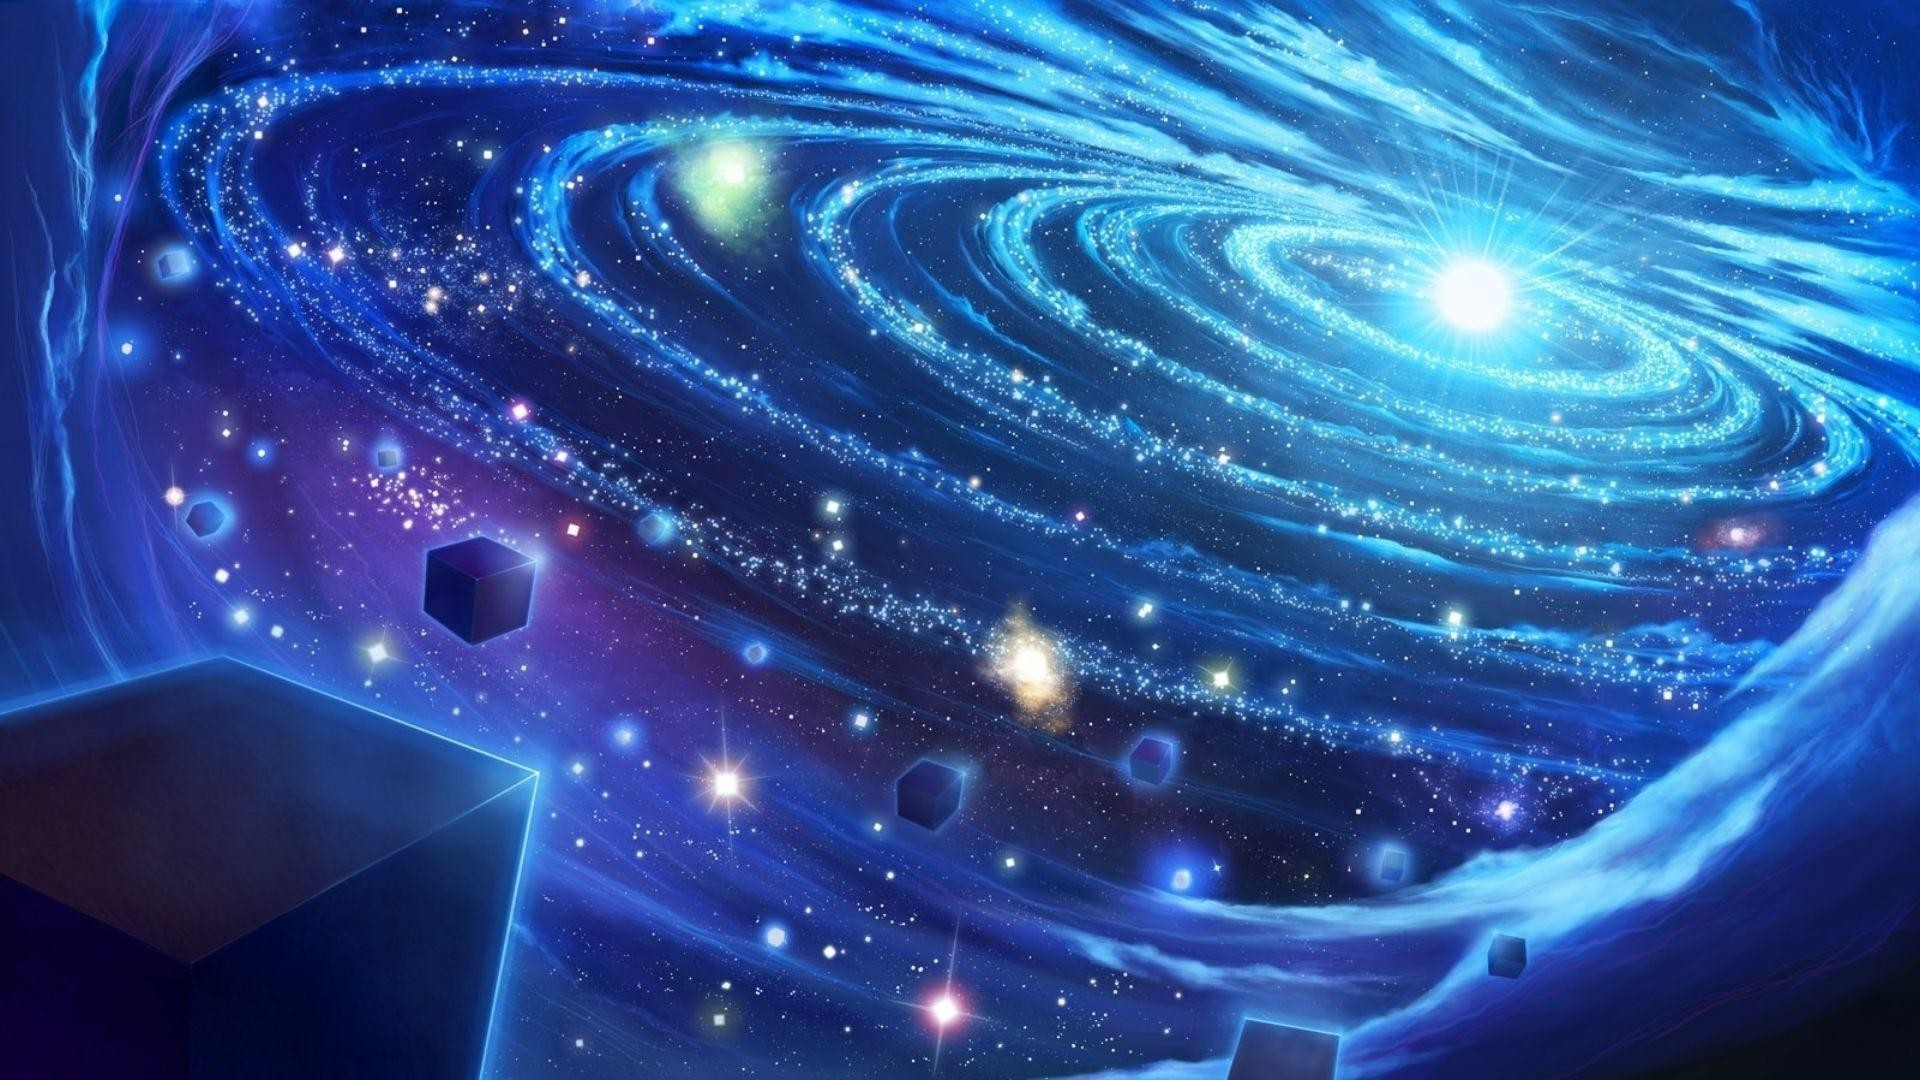 Light in the blue galaxy wallpaper Space wallpapers